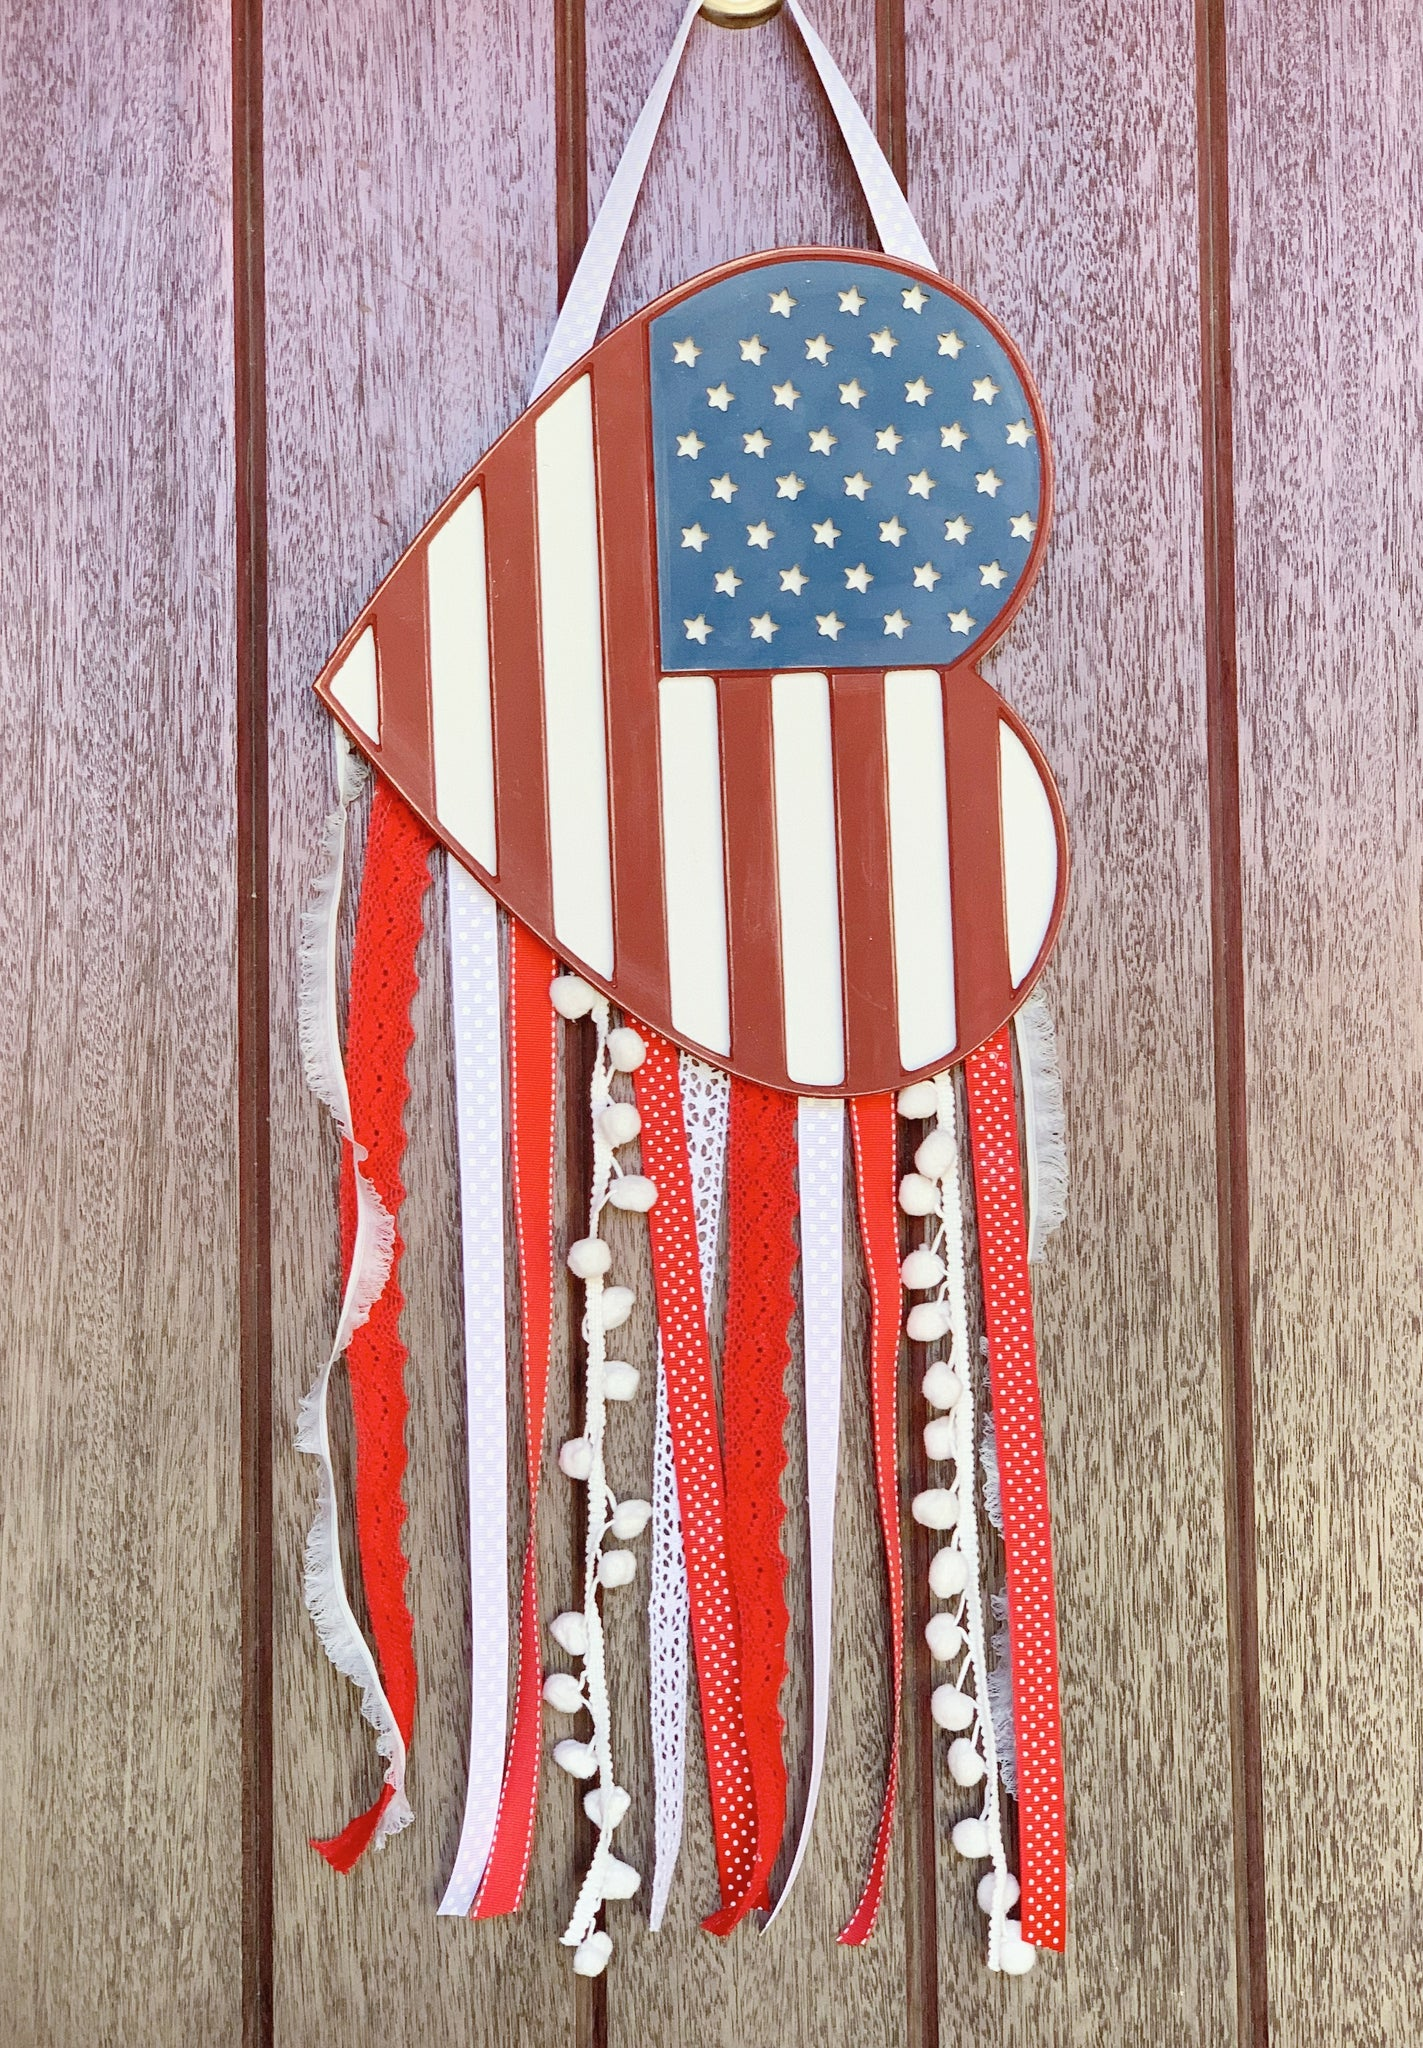 Heart Flag, July 4th Decor, Door Decor, Door Hanger, Patriotic Decor, 3D sign, Wood Sign